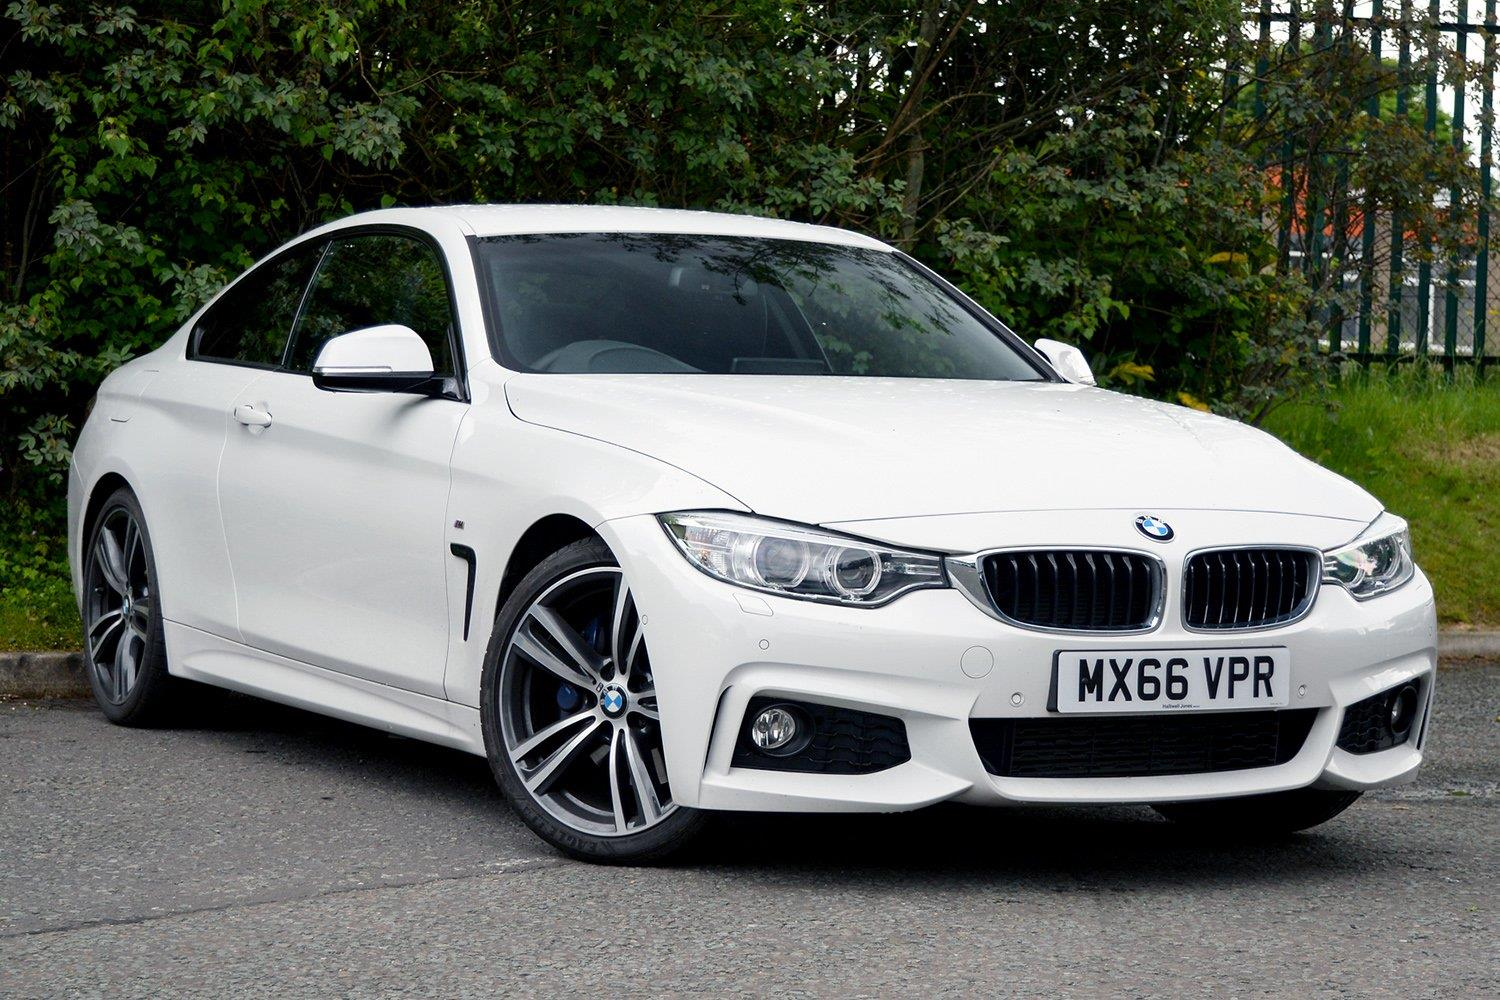 BMW 4 Series Coupé MX66VPR - Image 9